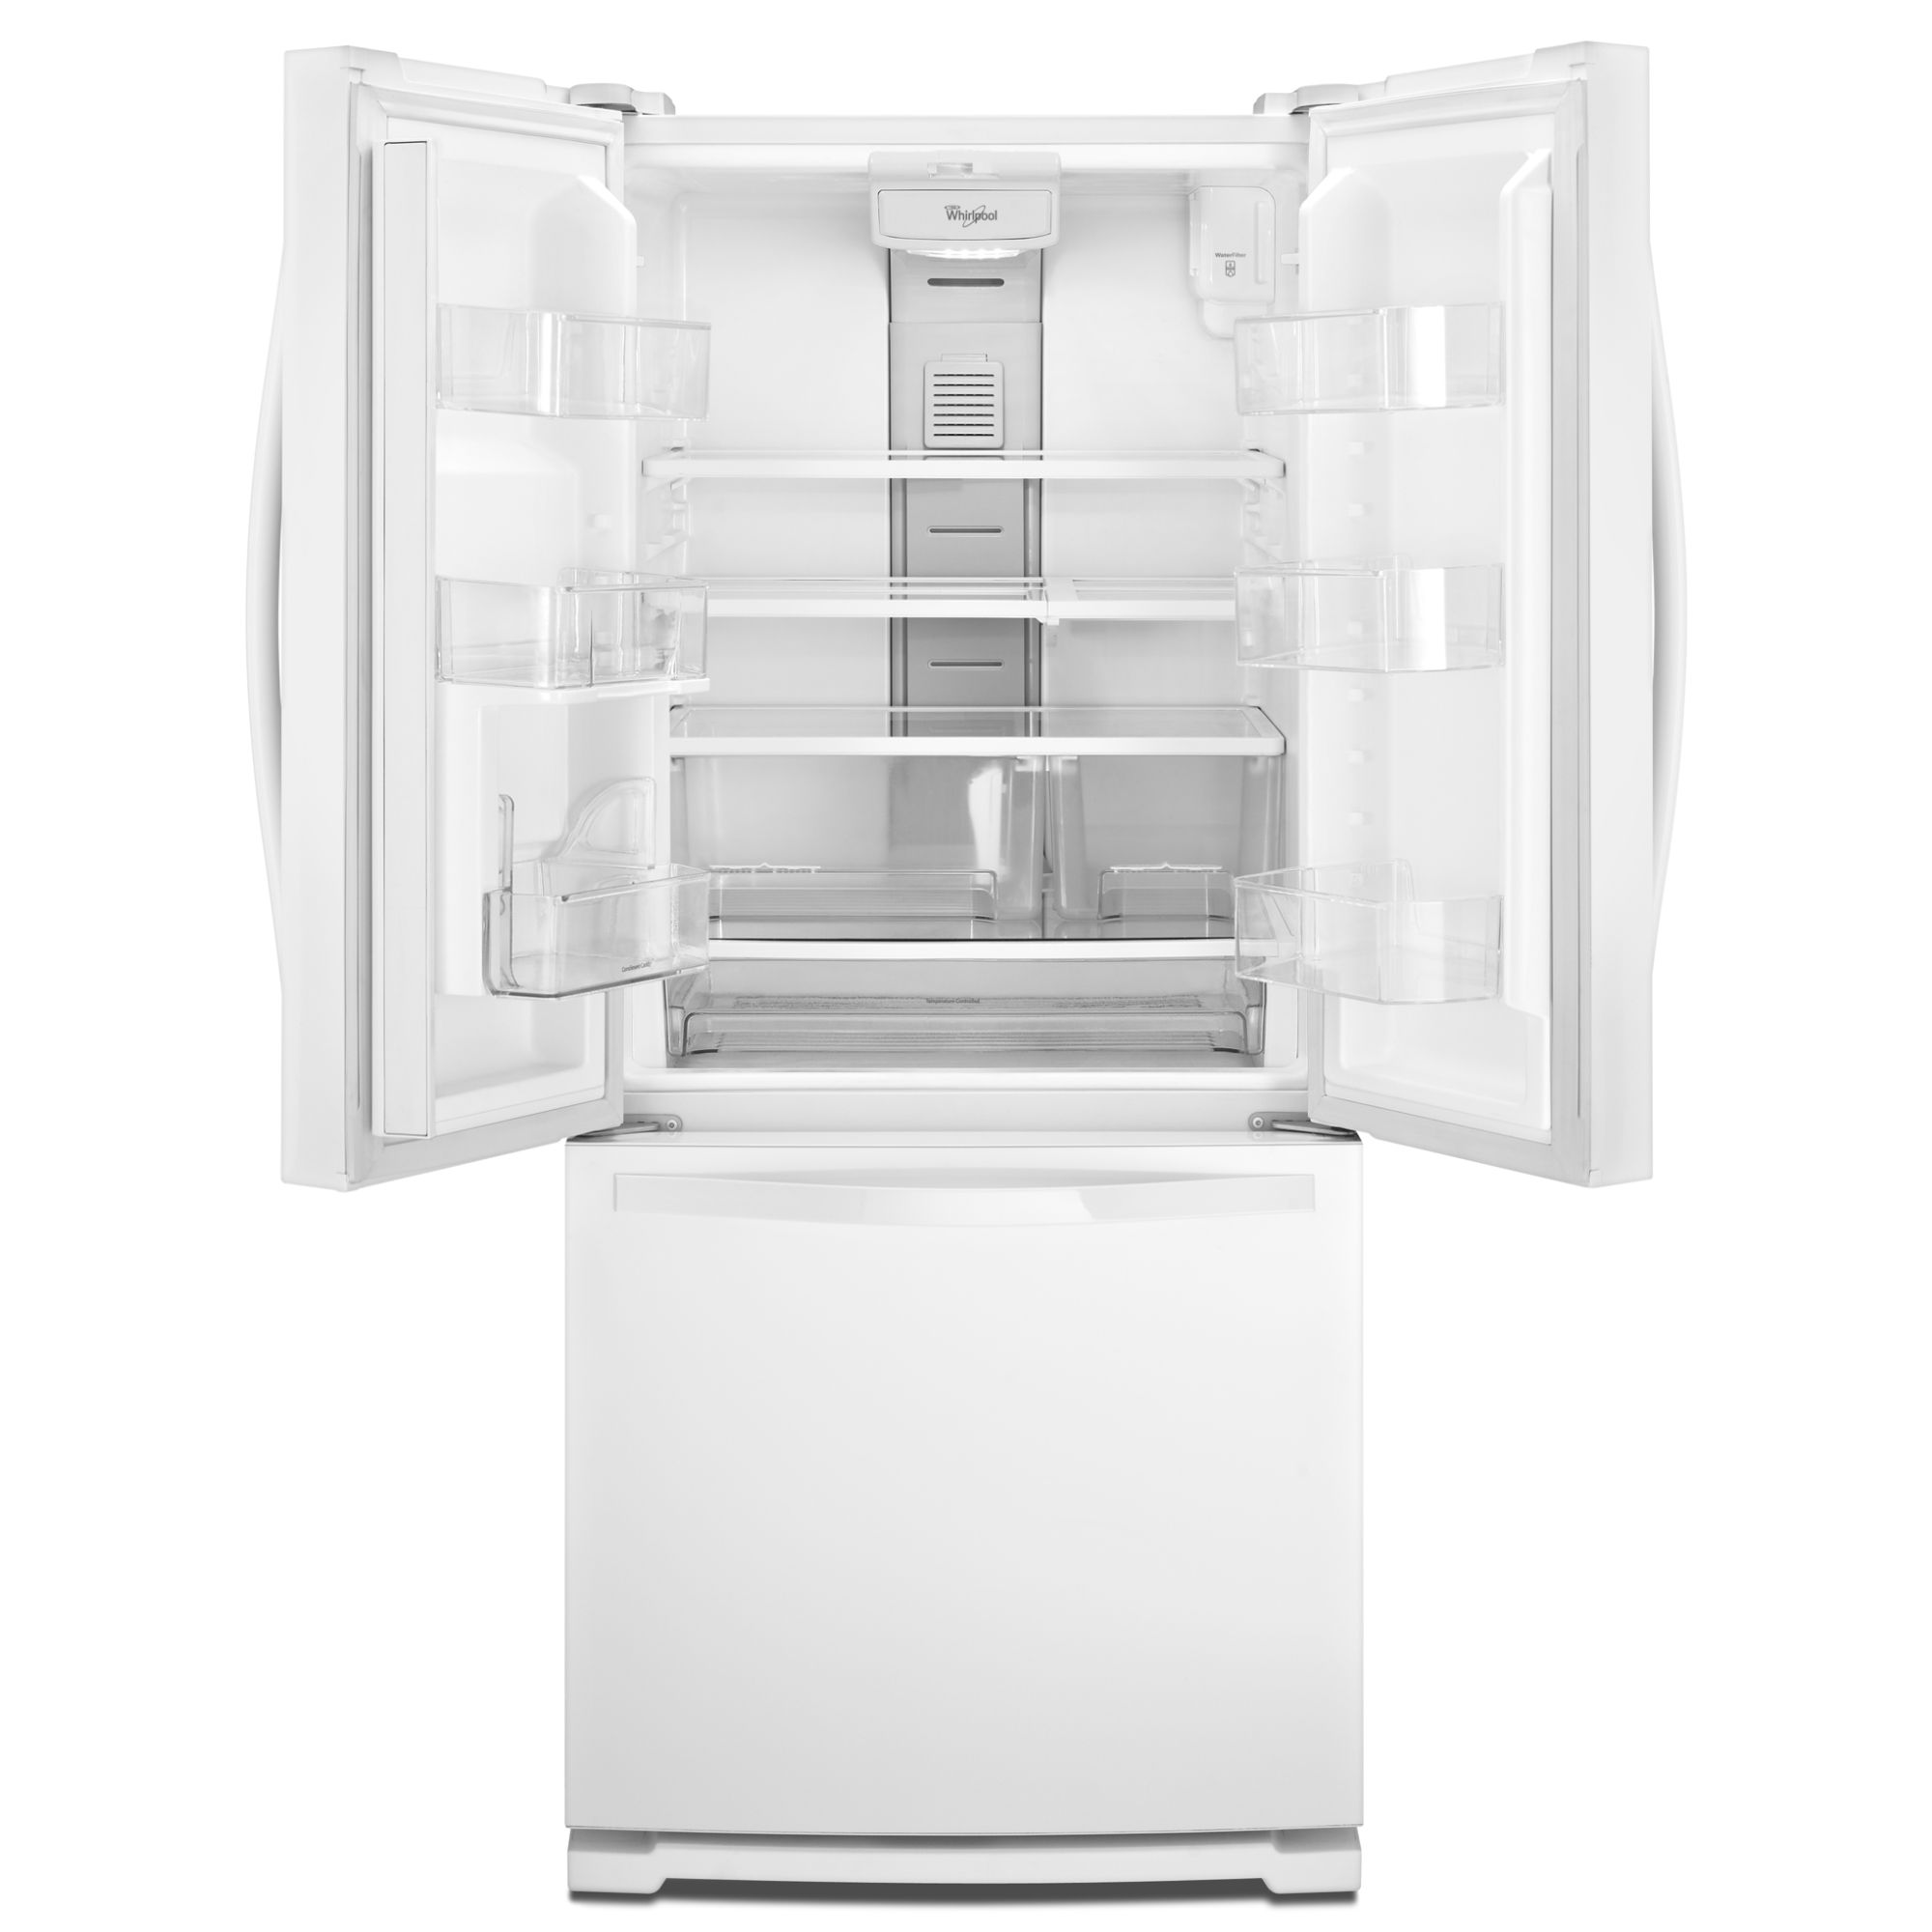 Whirlpool 20 cu. ft. French Door Refrigerator w/ Exterior Dispenser - White